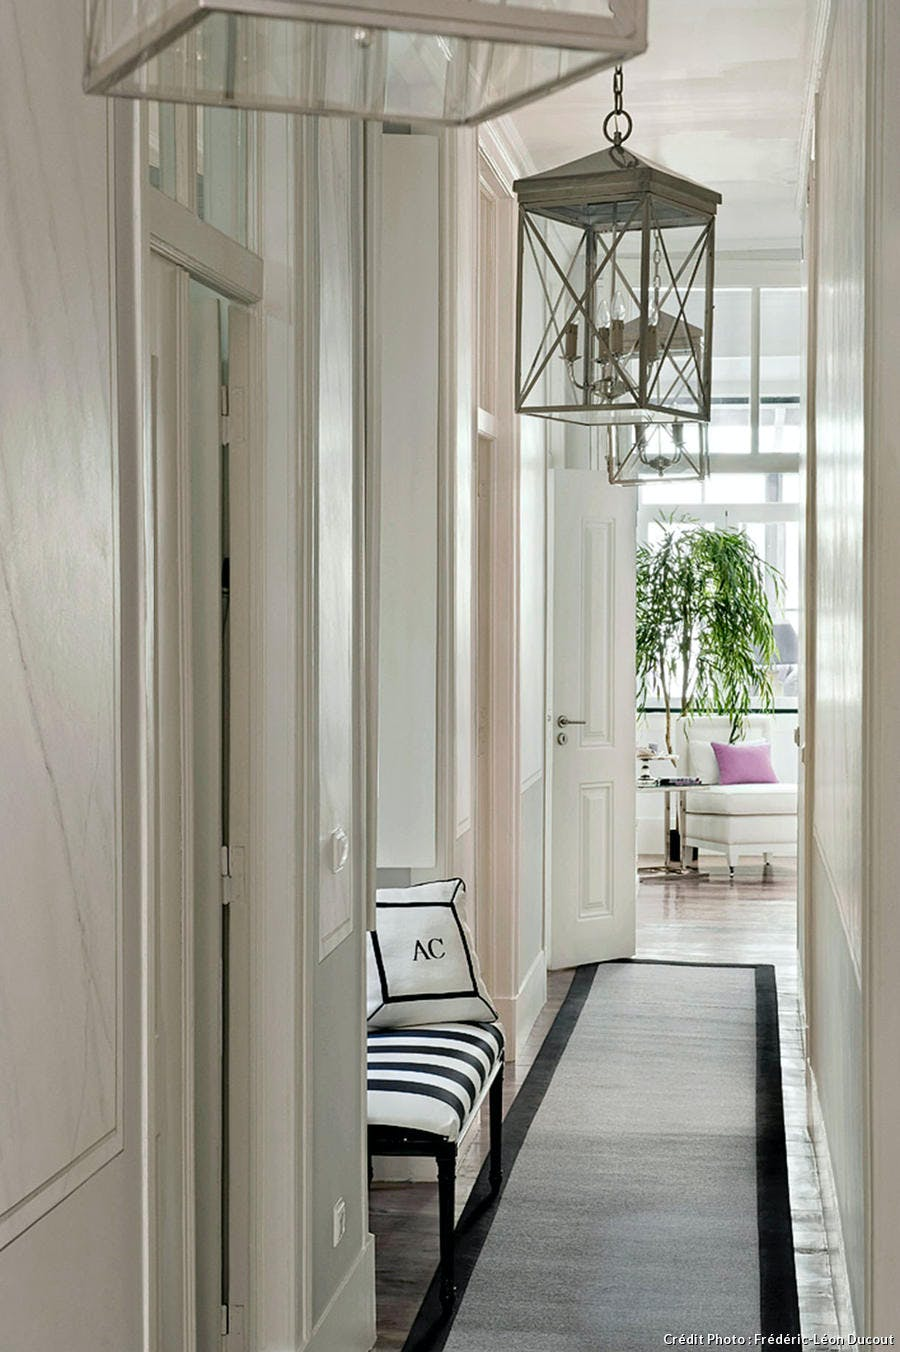 Appartement Lisbonne, le couloir